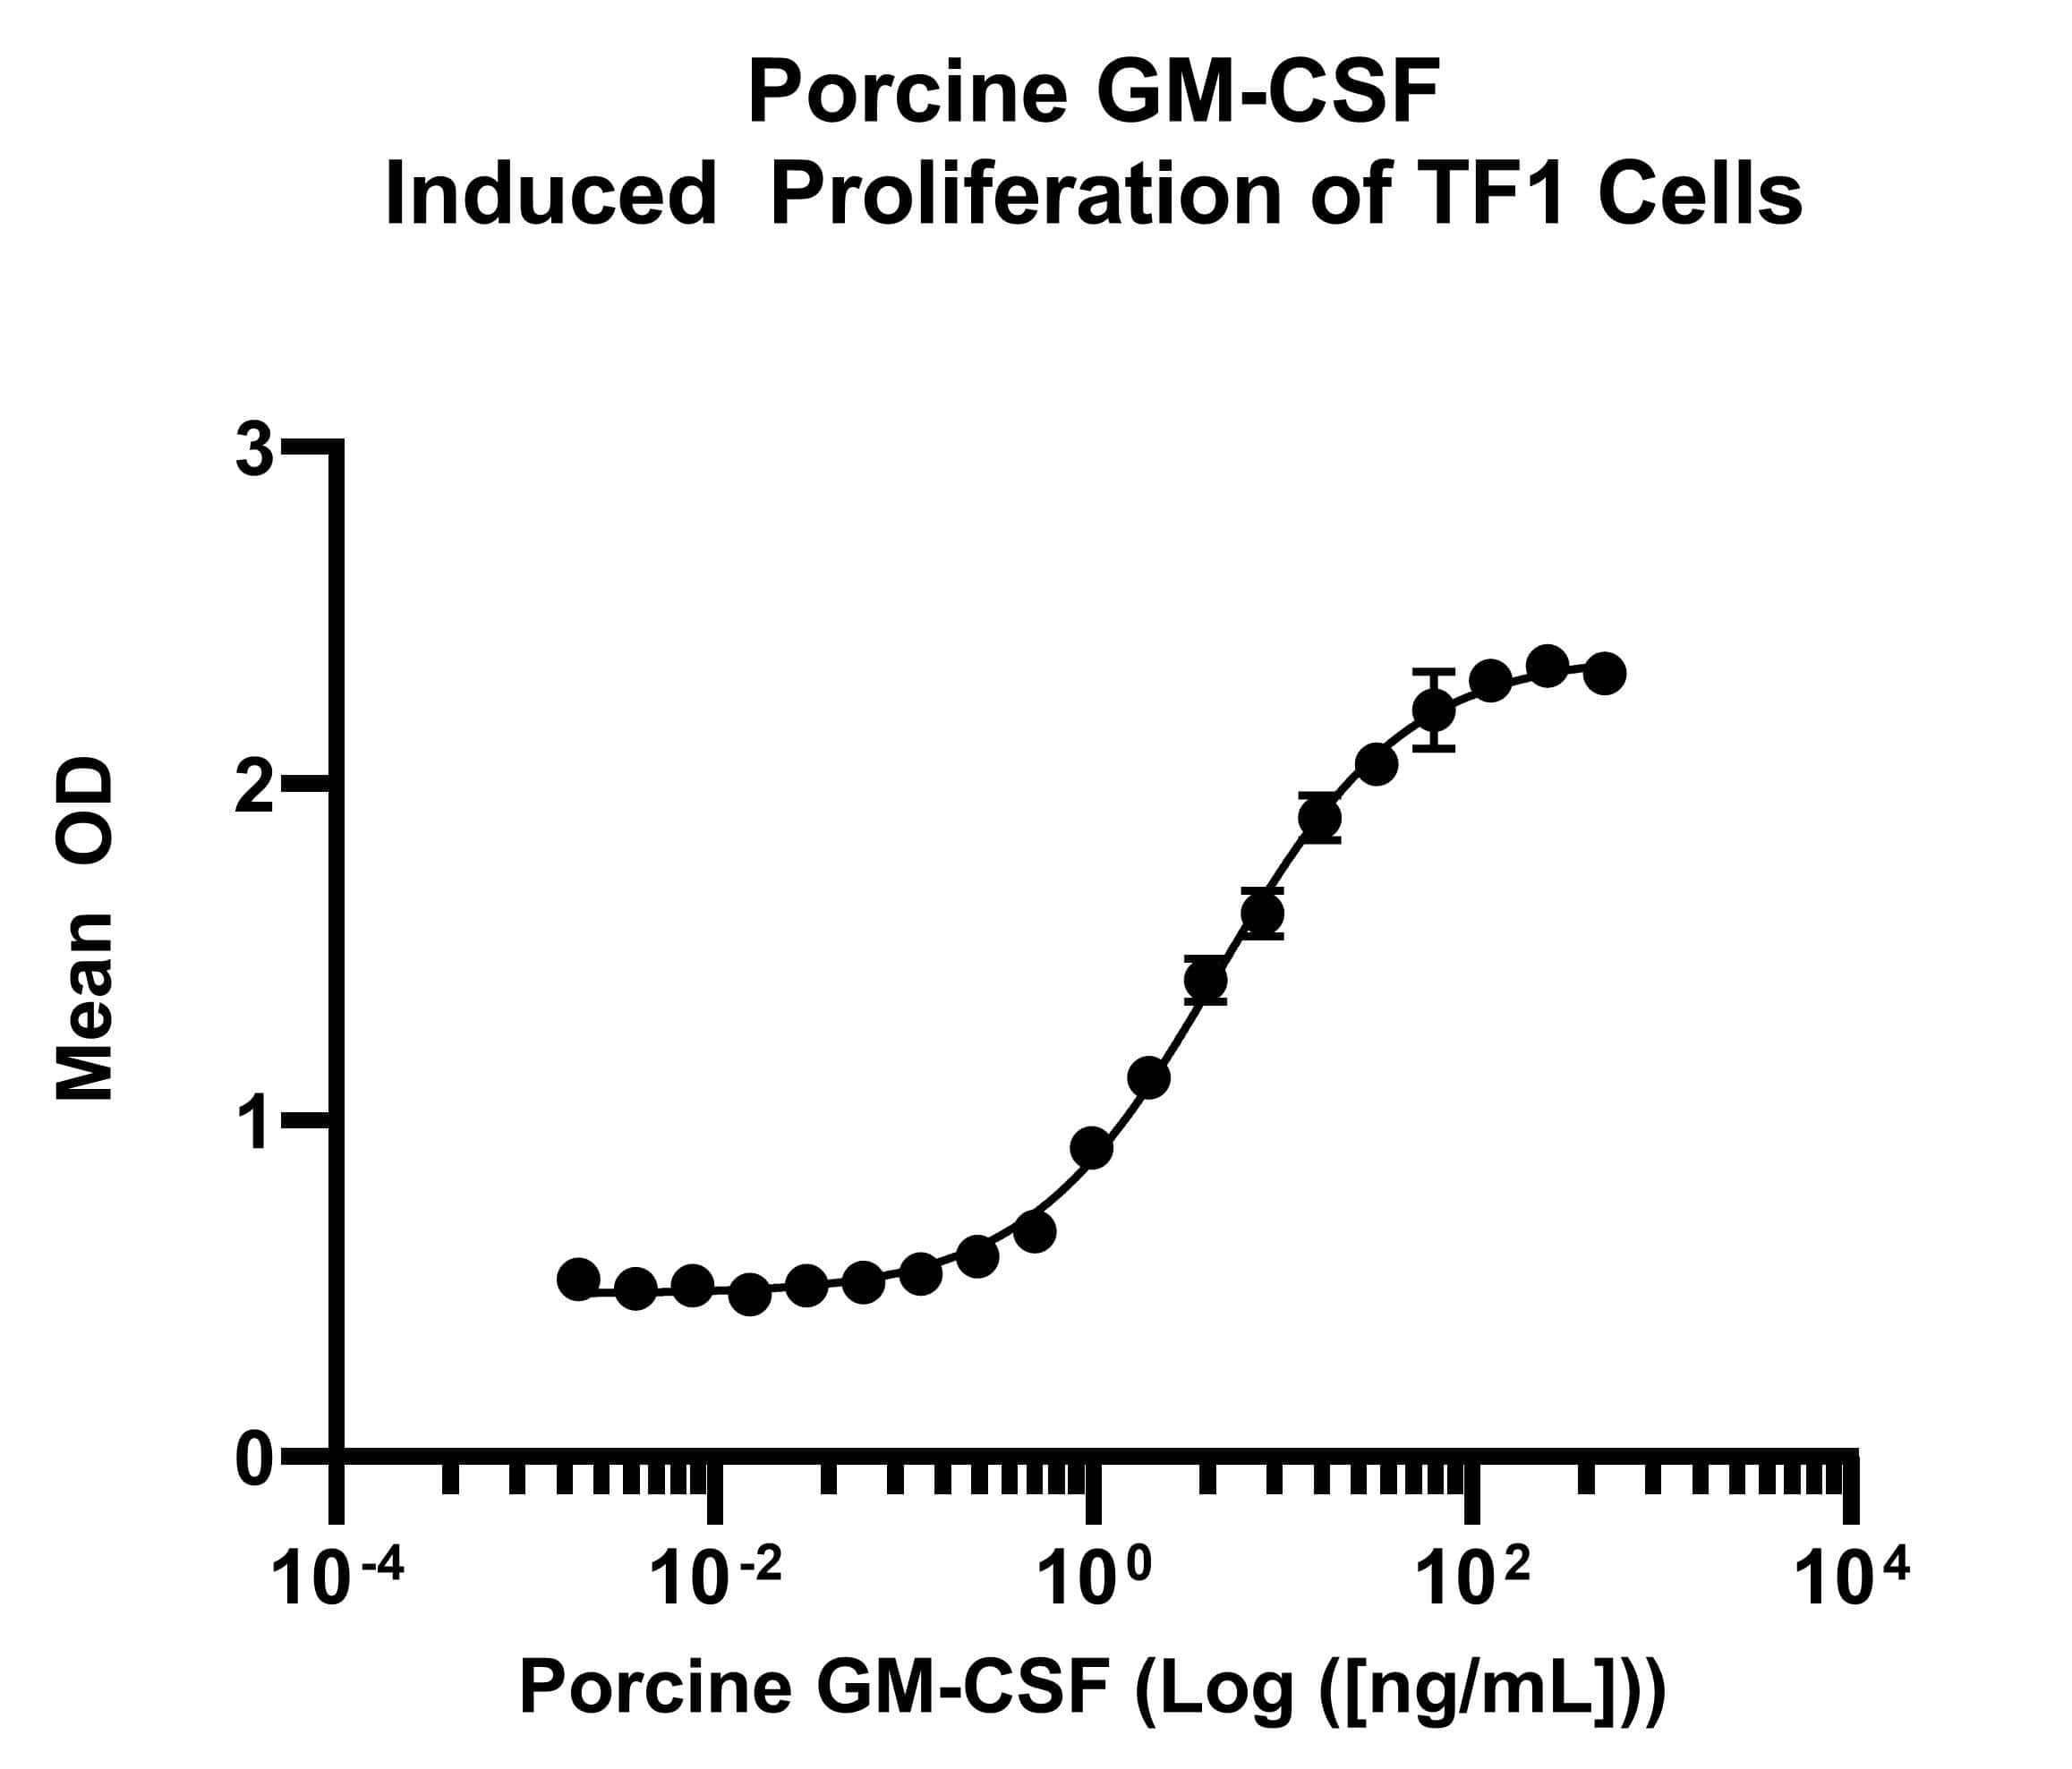 Porcine GM-CSF, AOF Protein in Functional assay (FN)